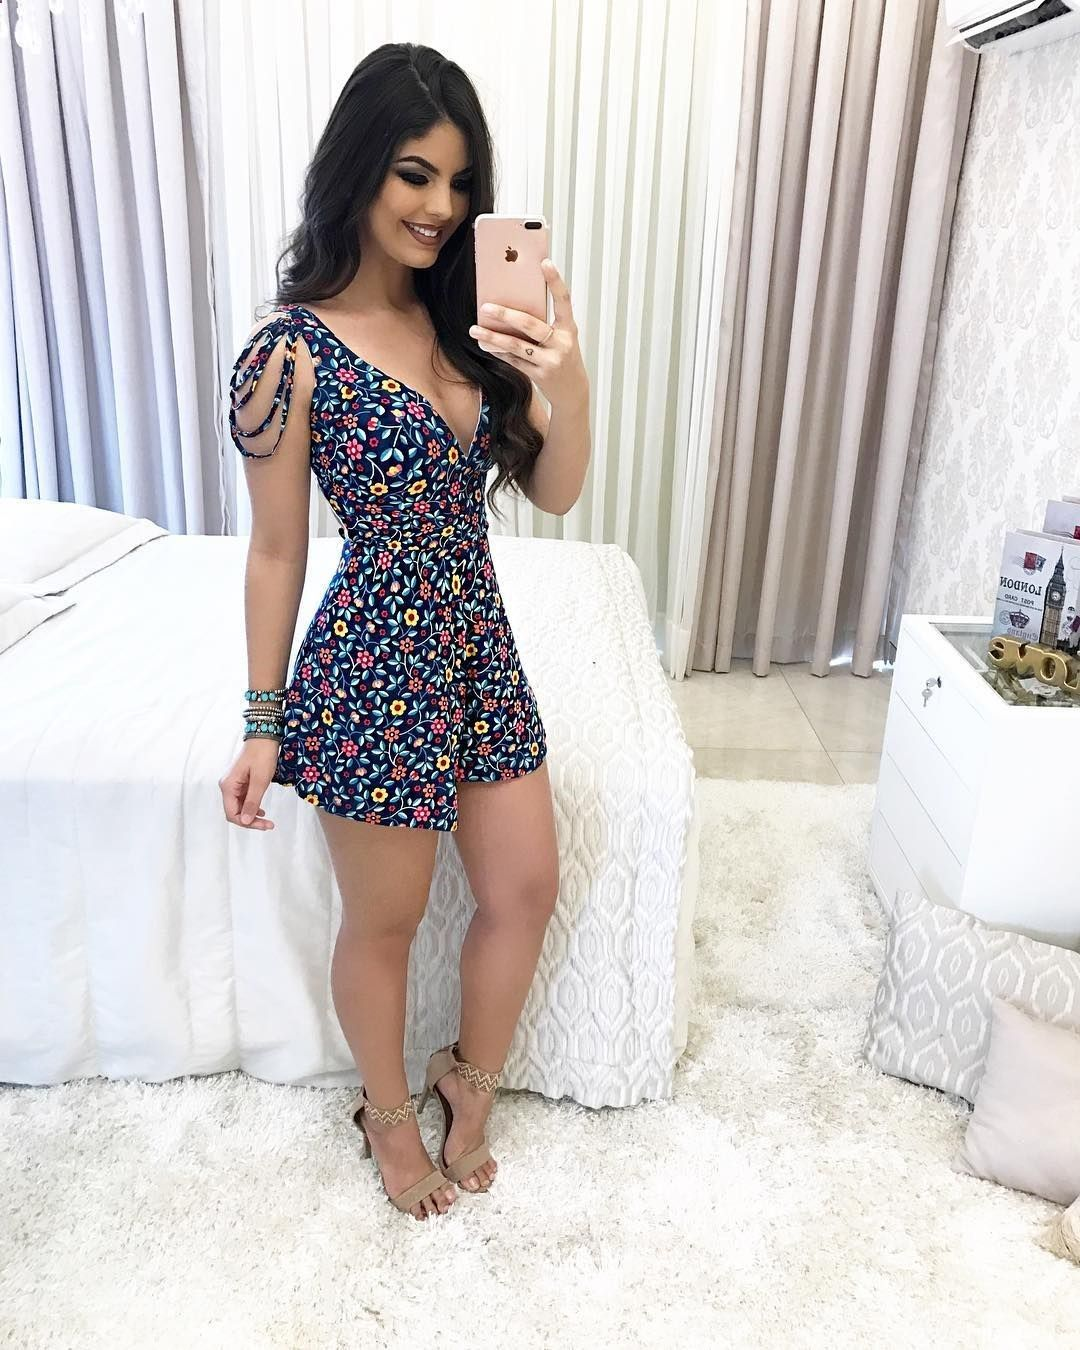 likes comments loja girls chick lojagirlschick on